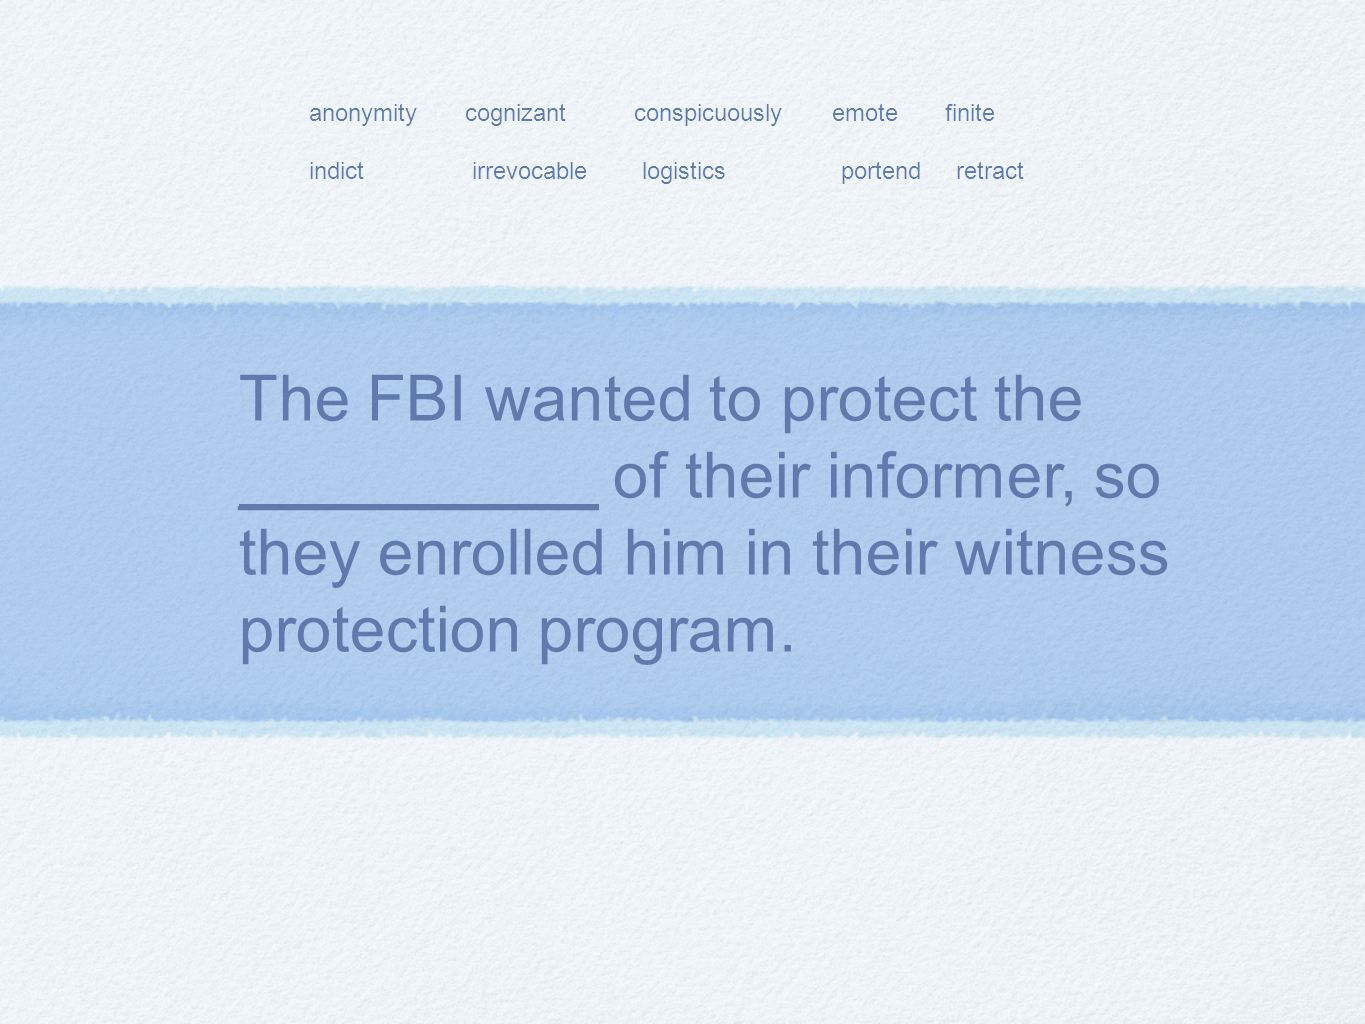 The FBI wanted to protect the __________ of their informer, so they enrolled him in their witness protection program.